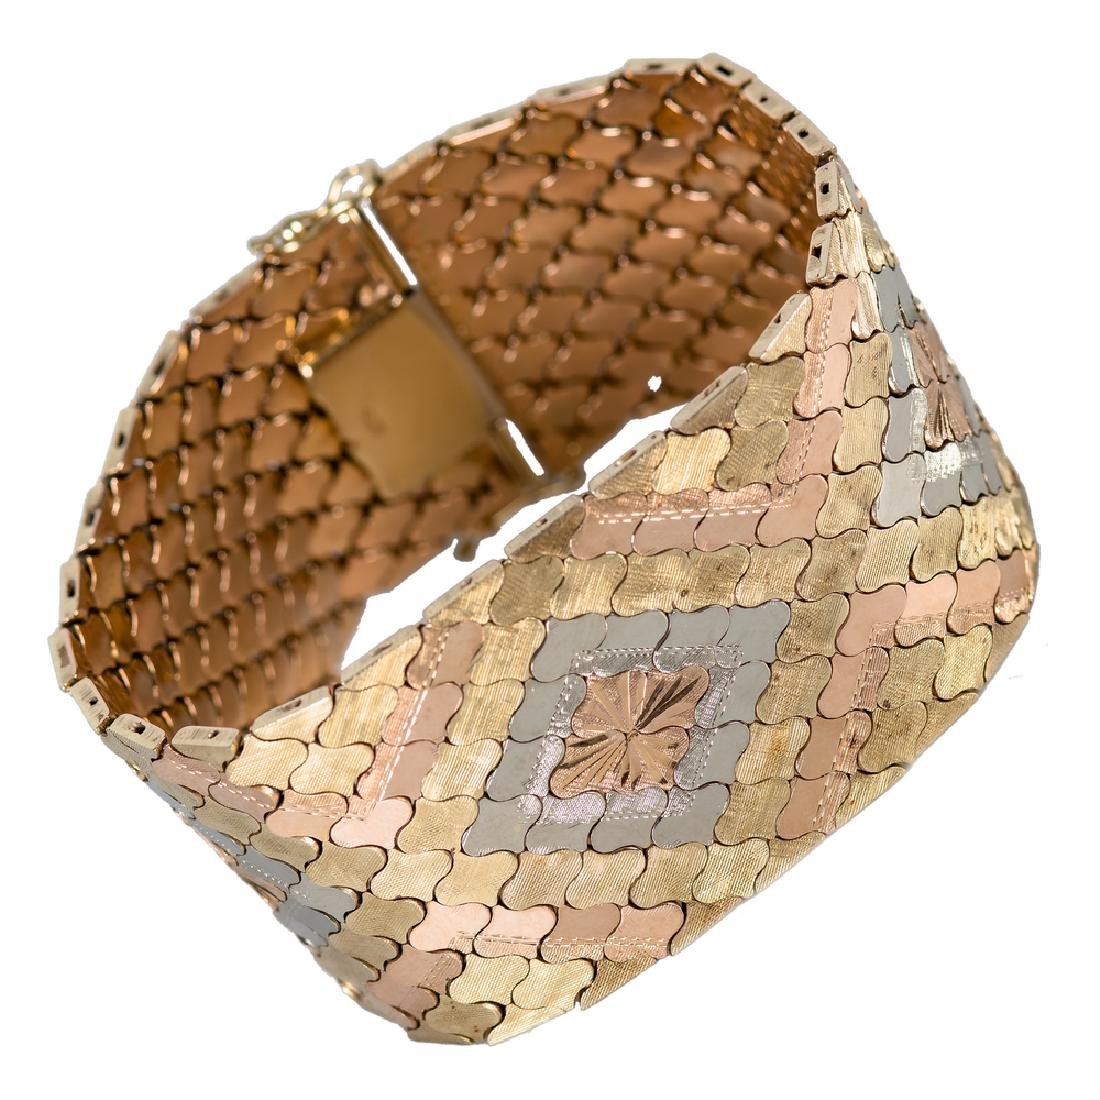 14 KARAT GOLD TRI-COLOR BRACELET